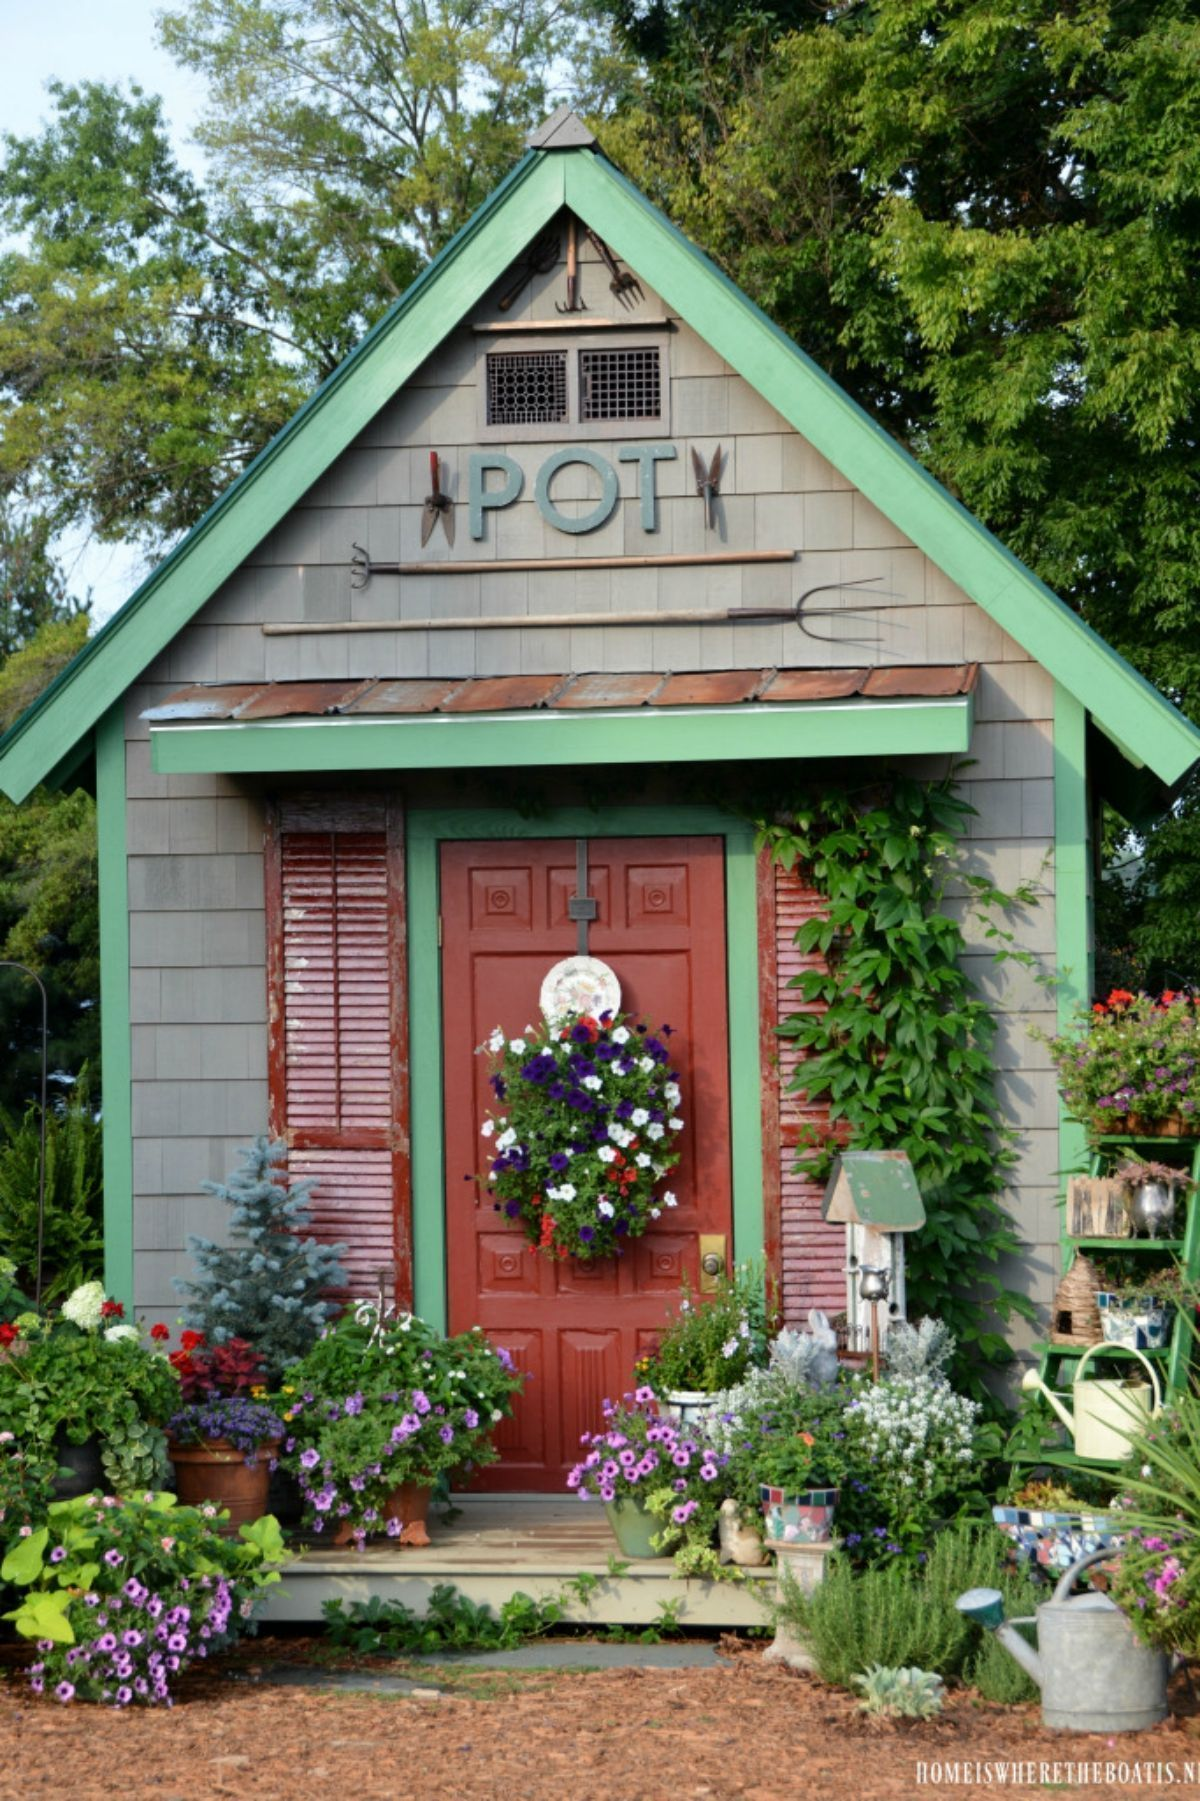 19 Perfectly Charming Garden Sheds | Storage ideas, Organisations ...